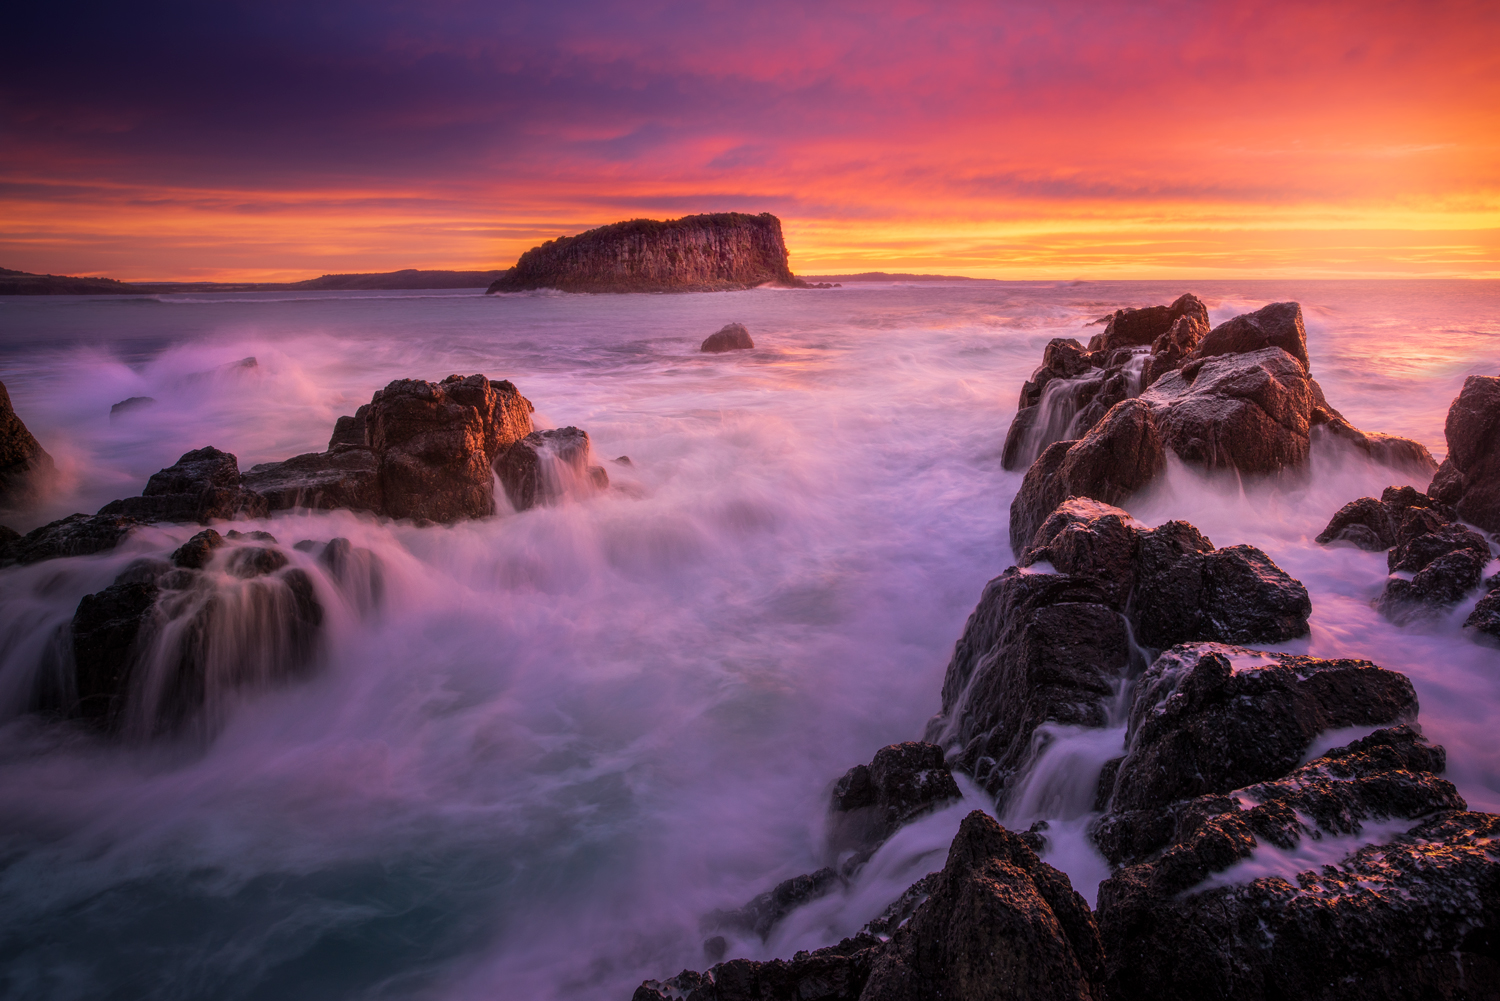 Minnamurra seascape photography workshop